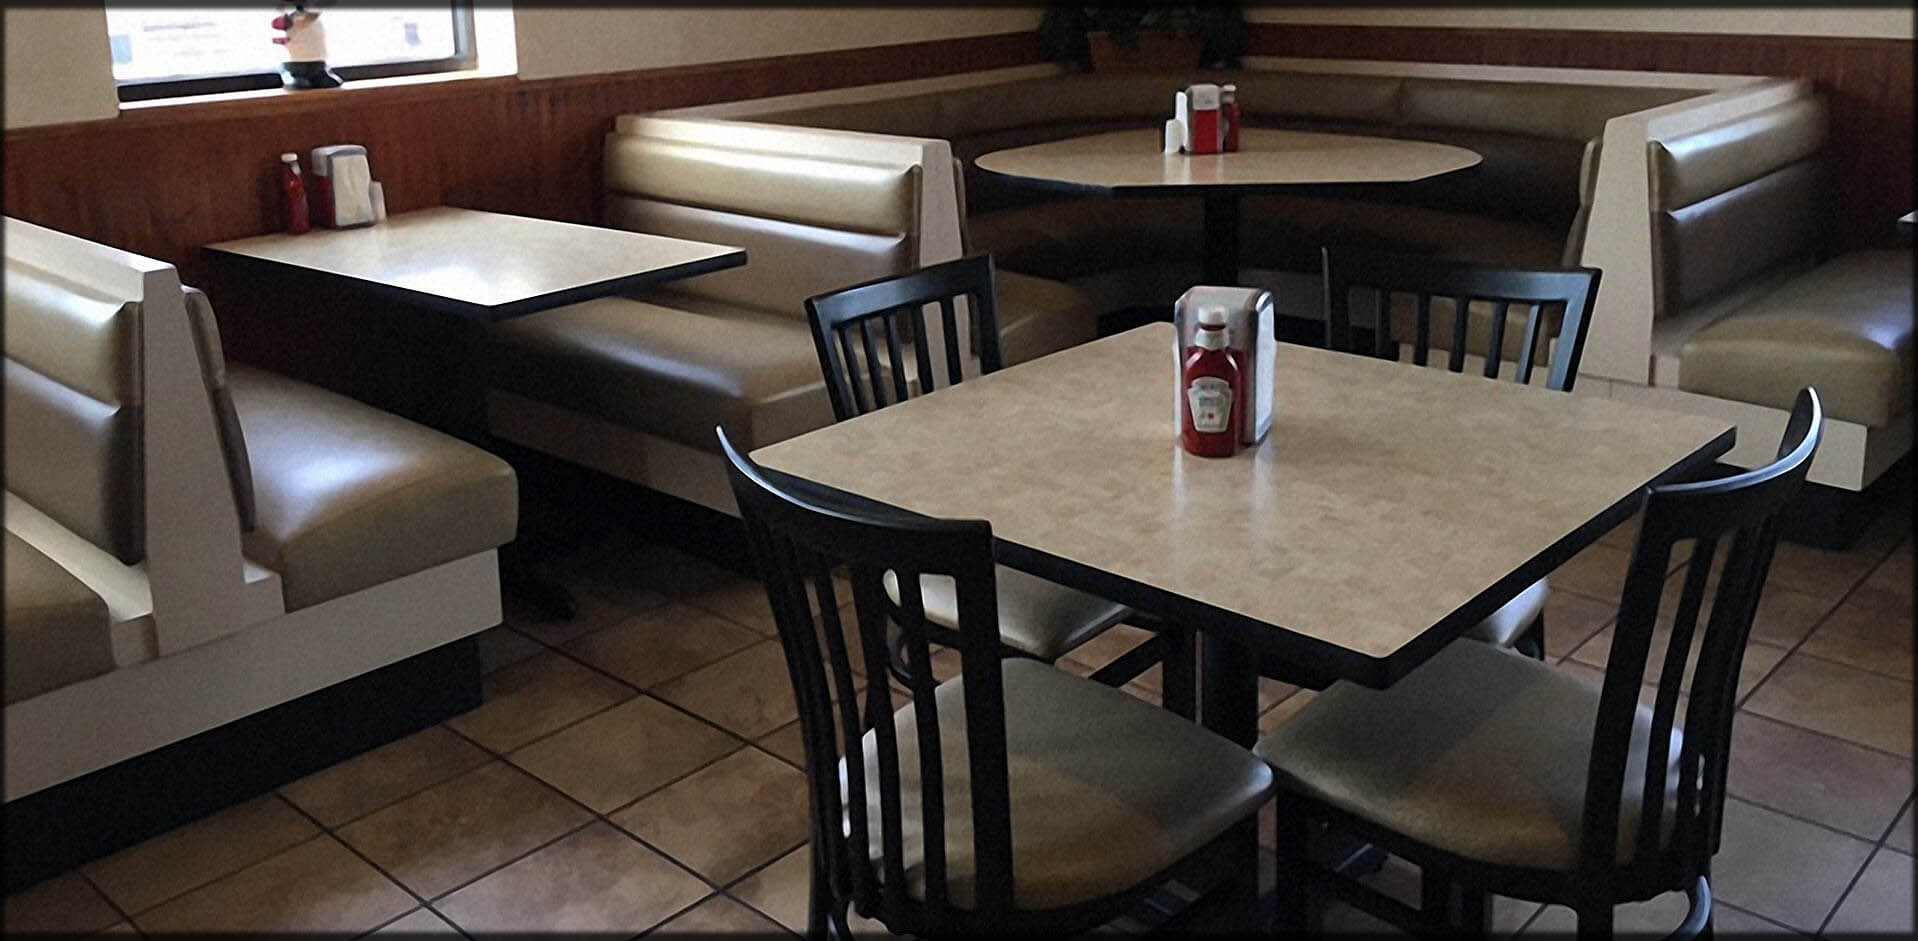 Restaurant Chairs And Tables Restaurant Furniture Seating Commercial Booths Custom Banquettes